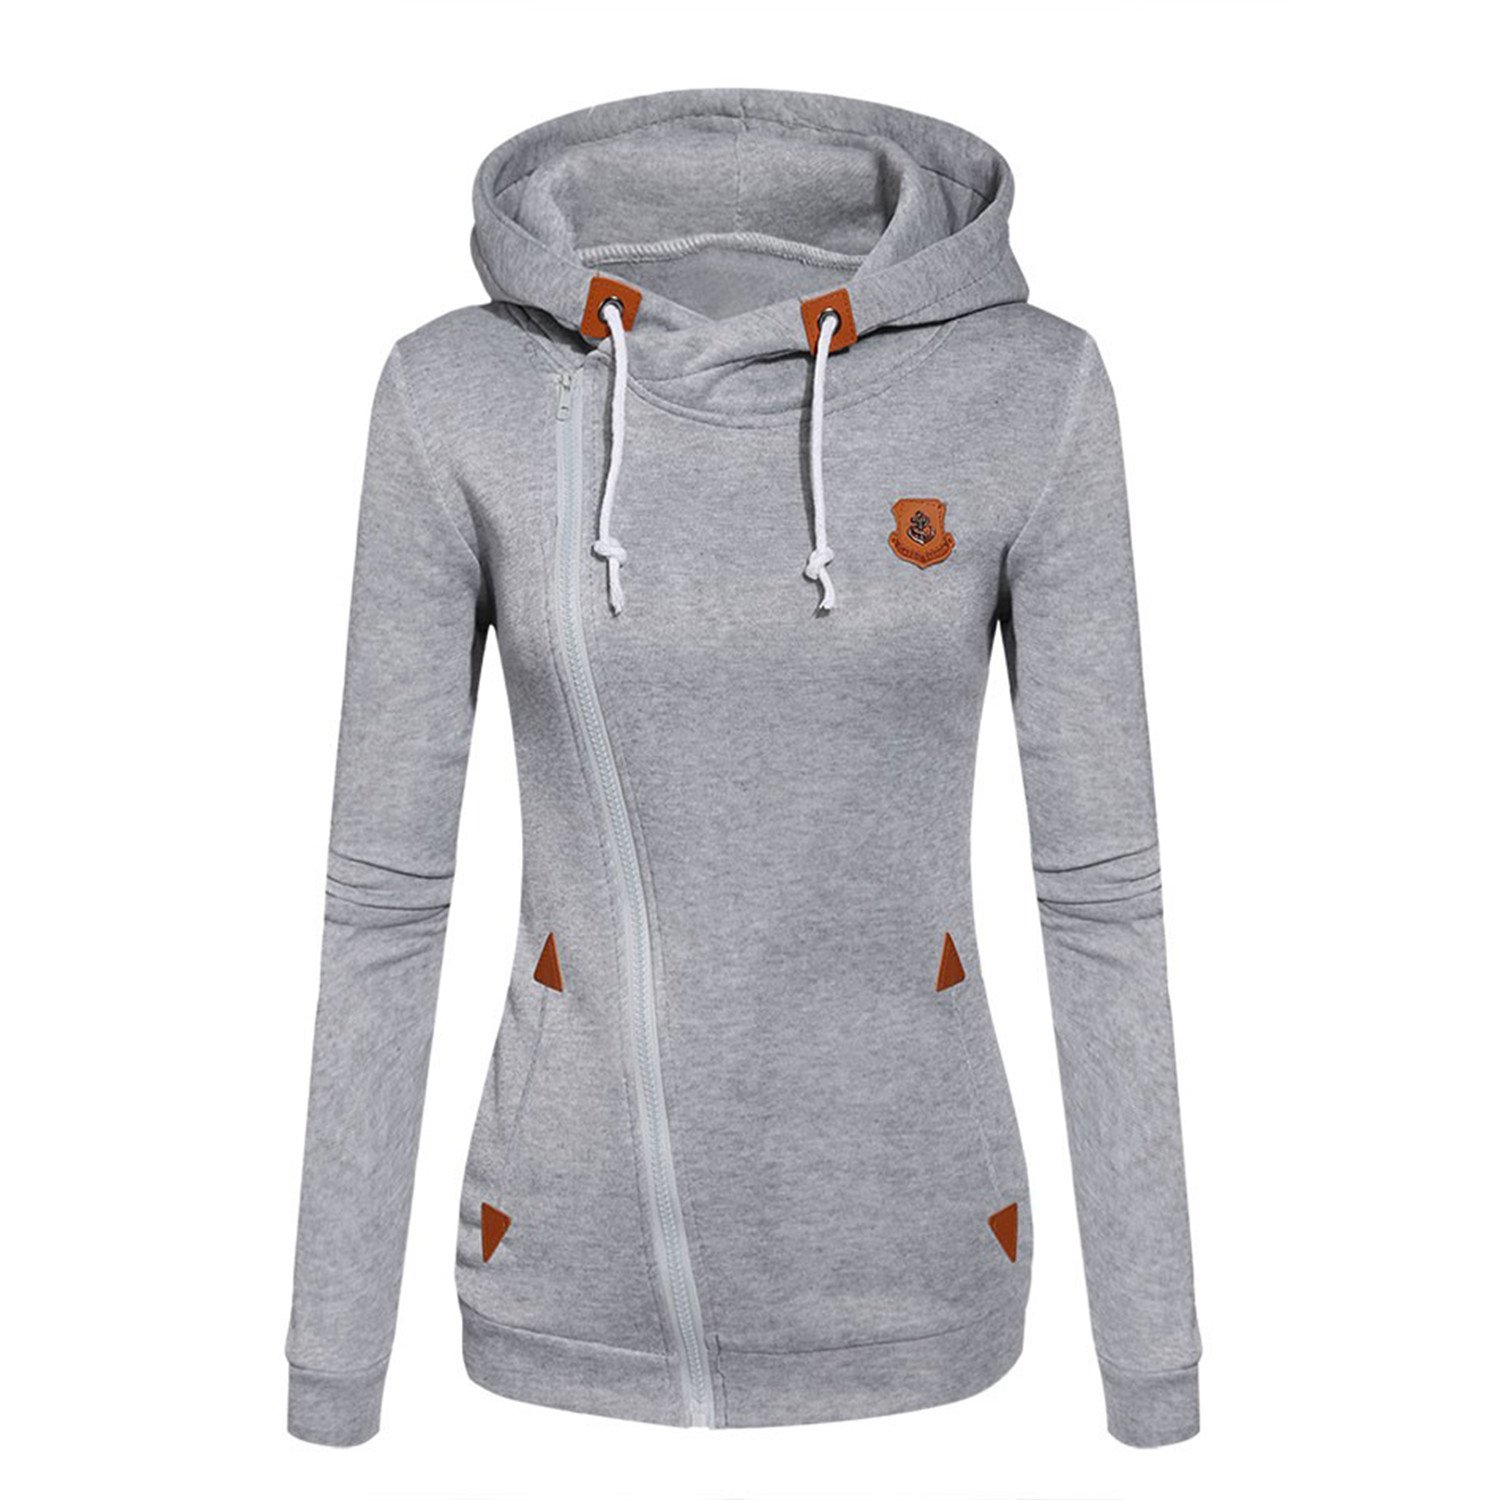 Doris Batchelor Nice Womens Fashion Fleeces Sweatshirts Ladies Hooded Candy Colors Solid Sweatshirt Long Sleeve Zip Up Clothing Light Gray S at Amazon ...